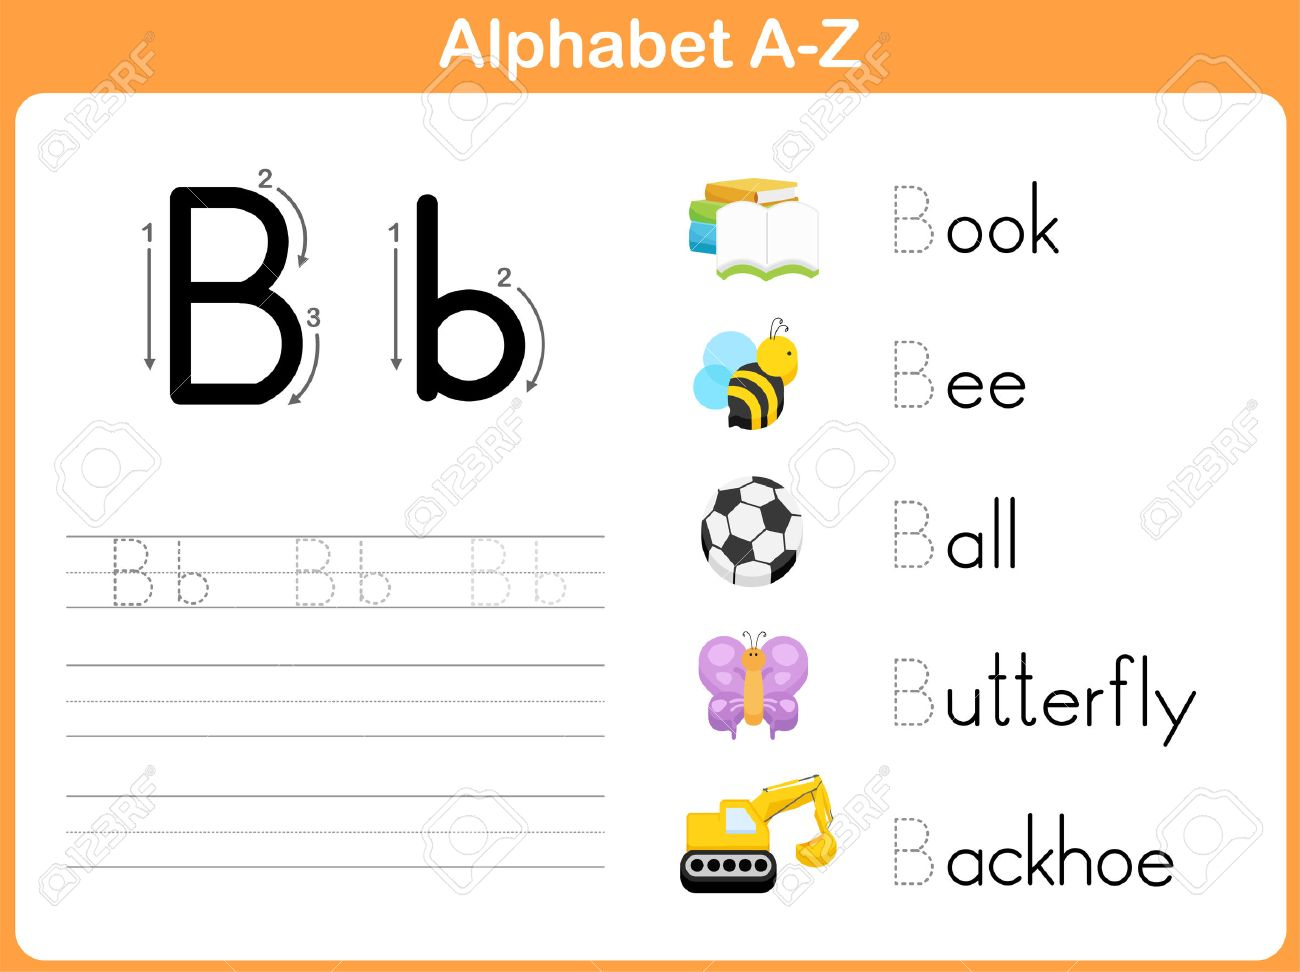 Alphabet Tracing Worksheet: Writing A-Z intended for Alphabet Tracing Worksheets A-Z